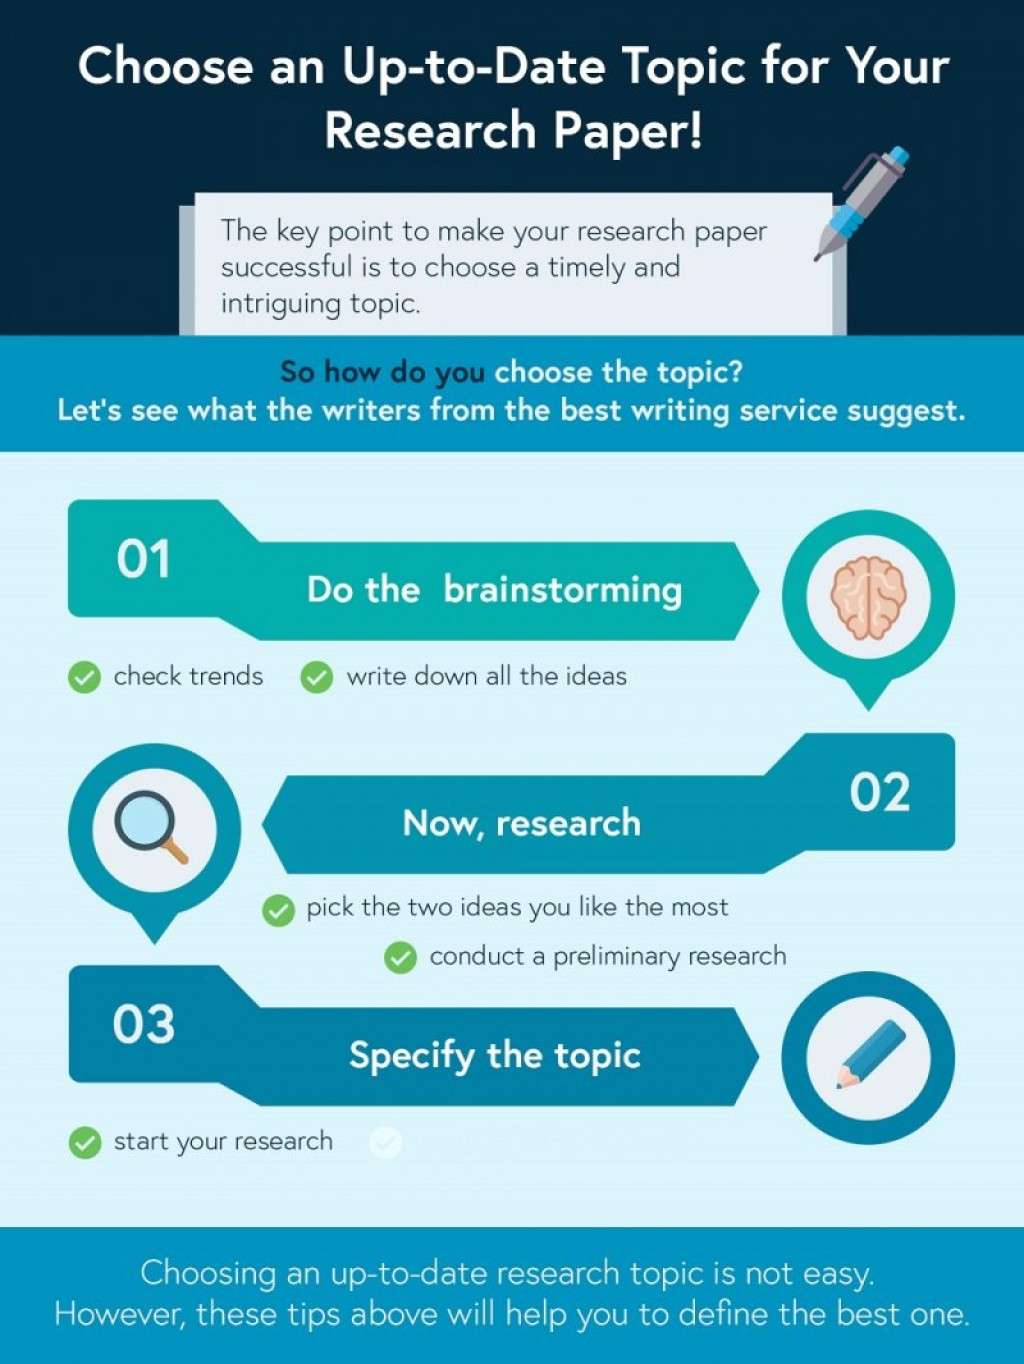 006 Research Paper Infographic Writing Dreaded Service Services In Chennai Mumbai Cheap Large